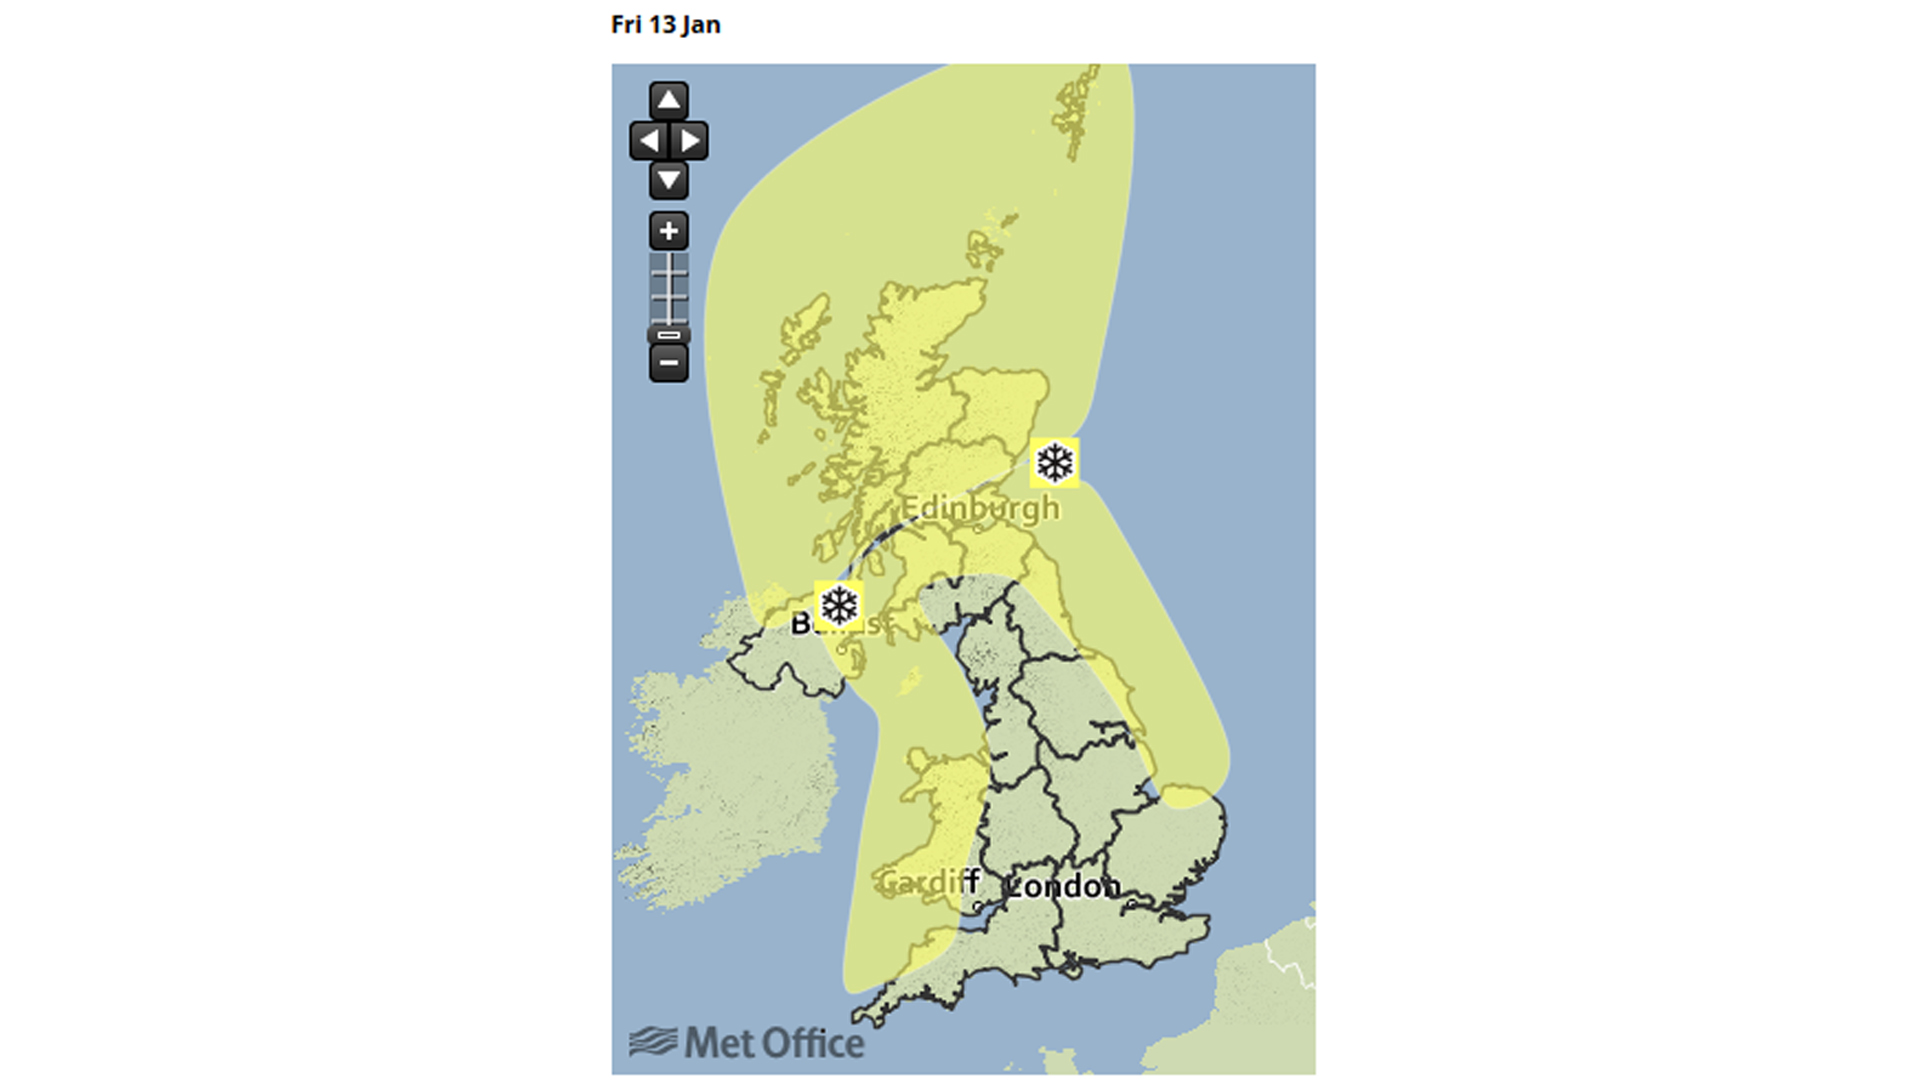 Met office snow warning map